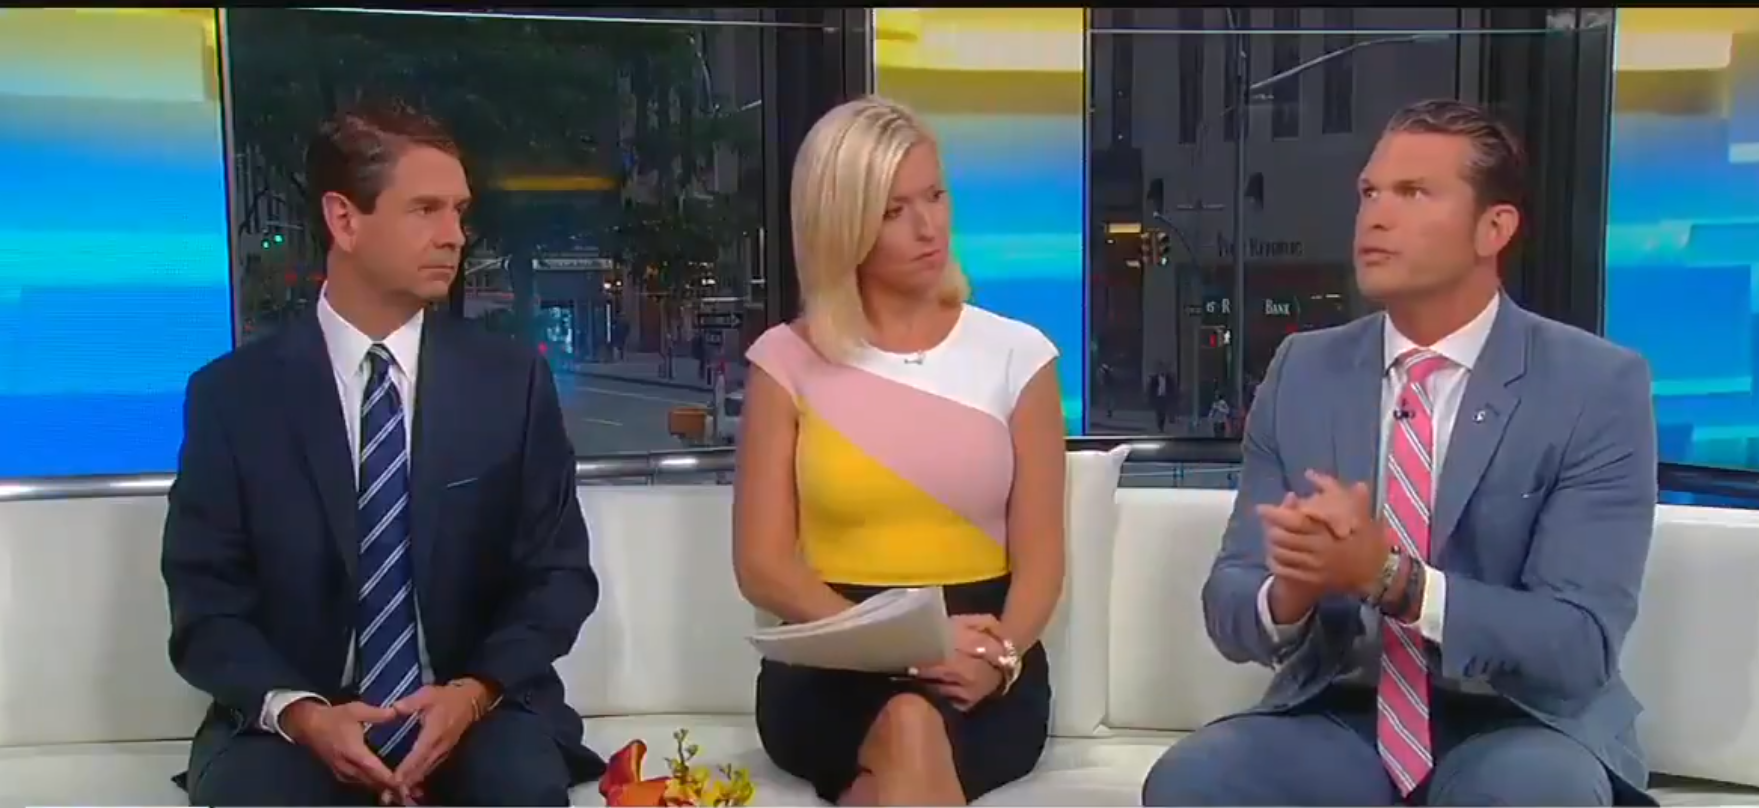 Fox hosts say climate change is the 'religion' of Democrats – 'To take away our freedom'